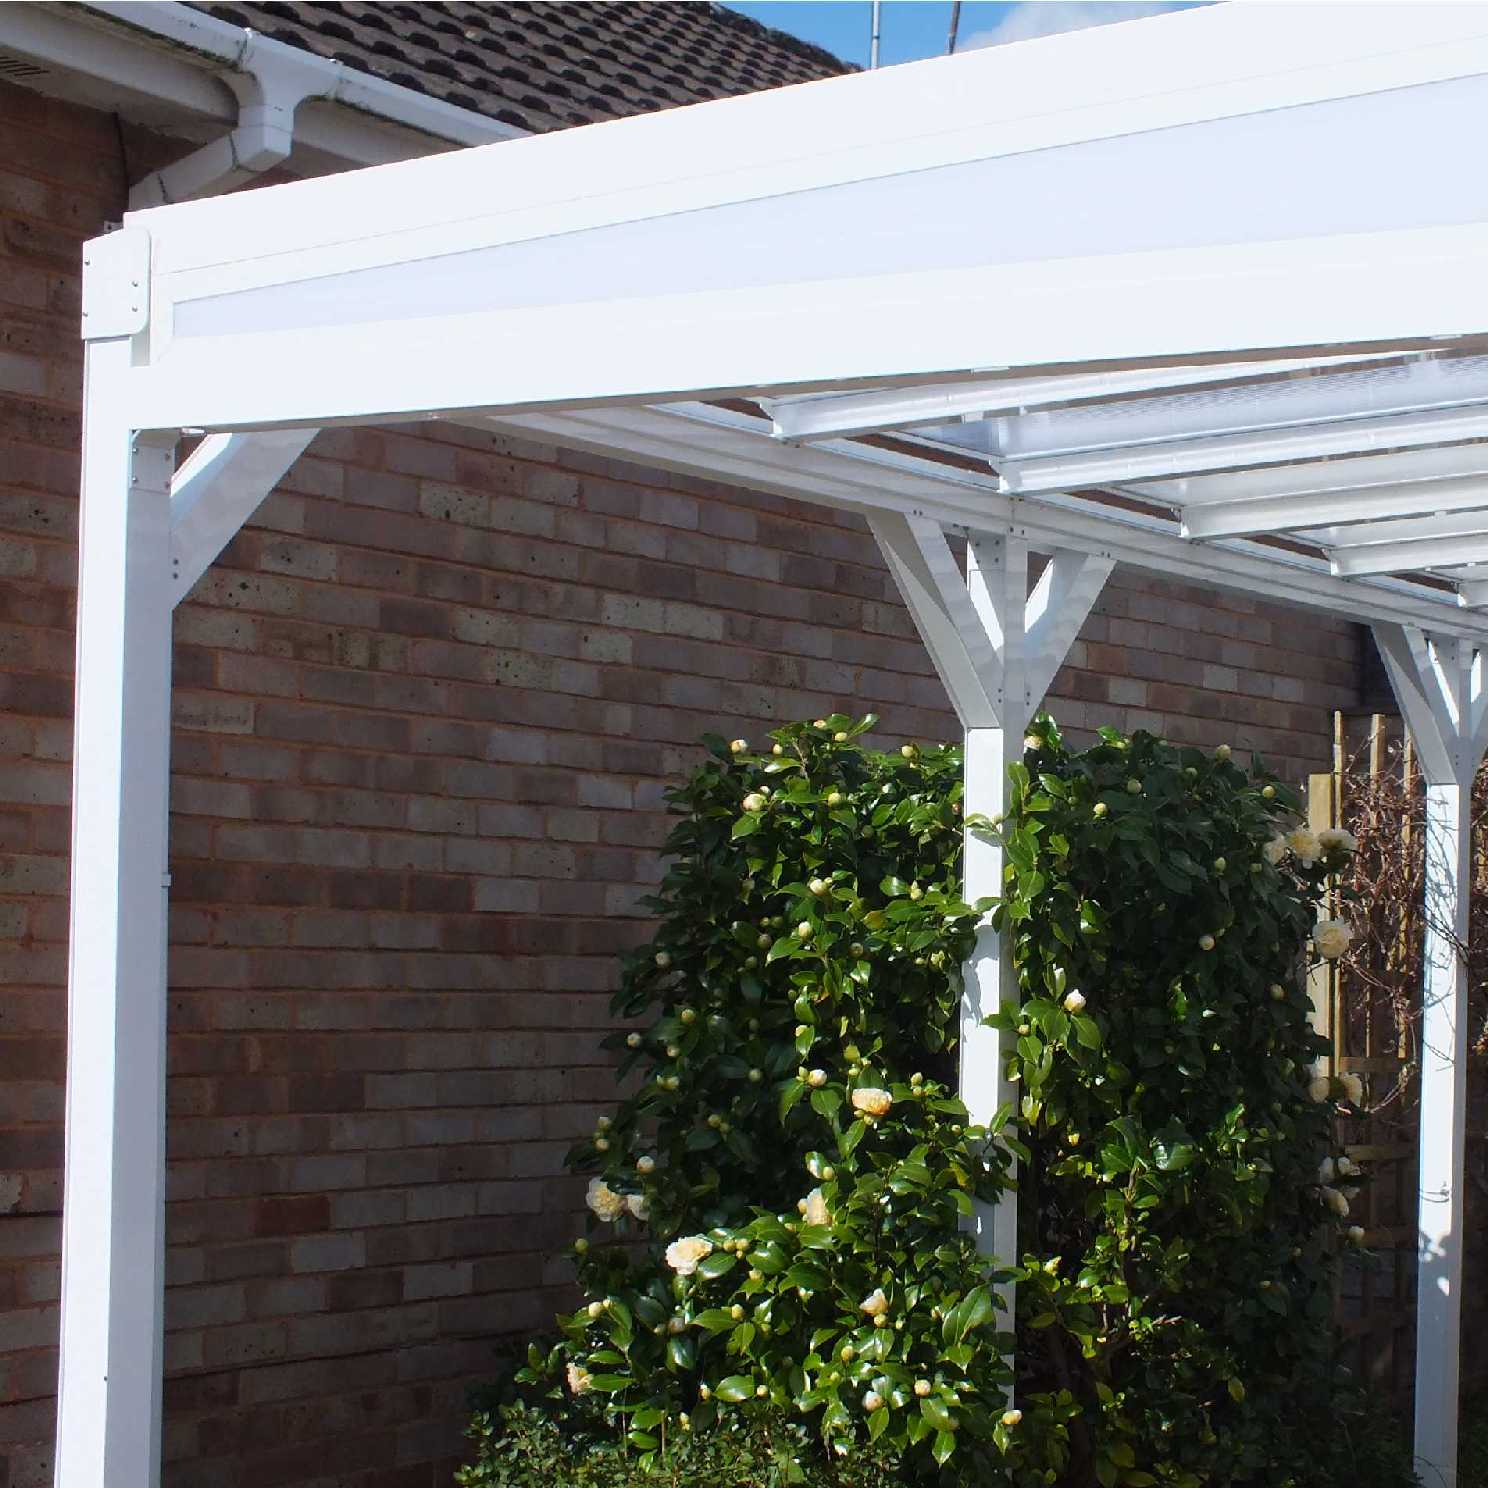 Omega Smart Lean-To Canopy with 16mm Polycarbonate Glazing - 7.4m (W) x 1.5m (P), (4) Supporting Posts from Omega Build